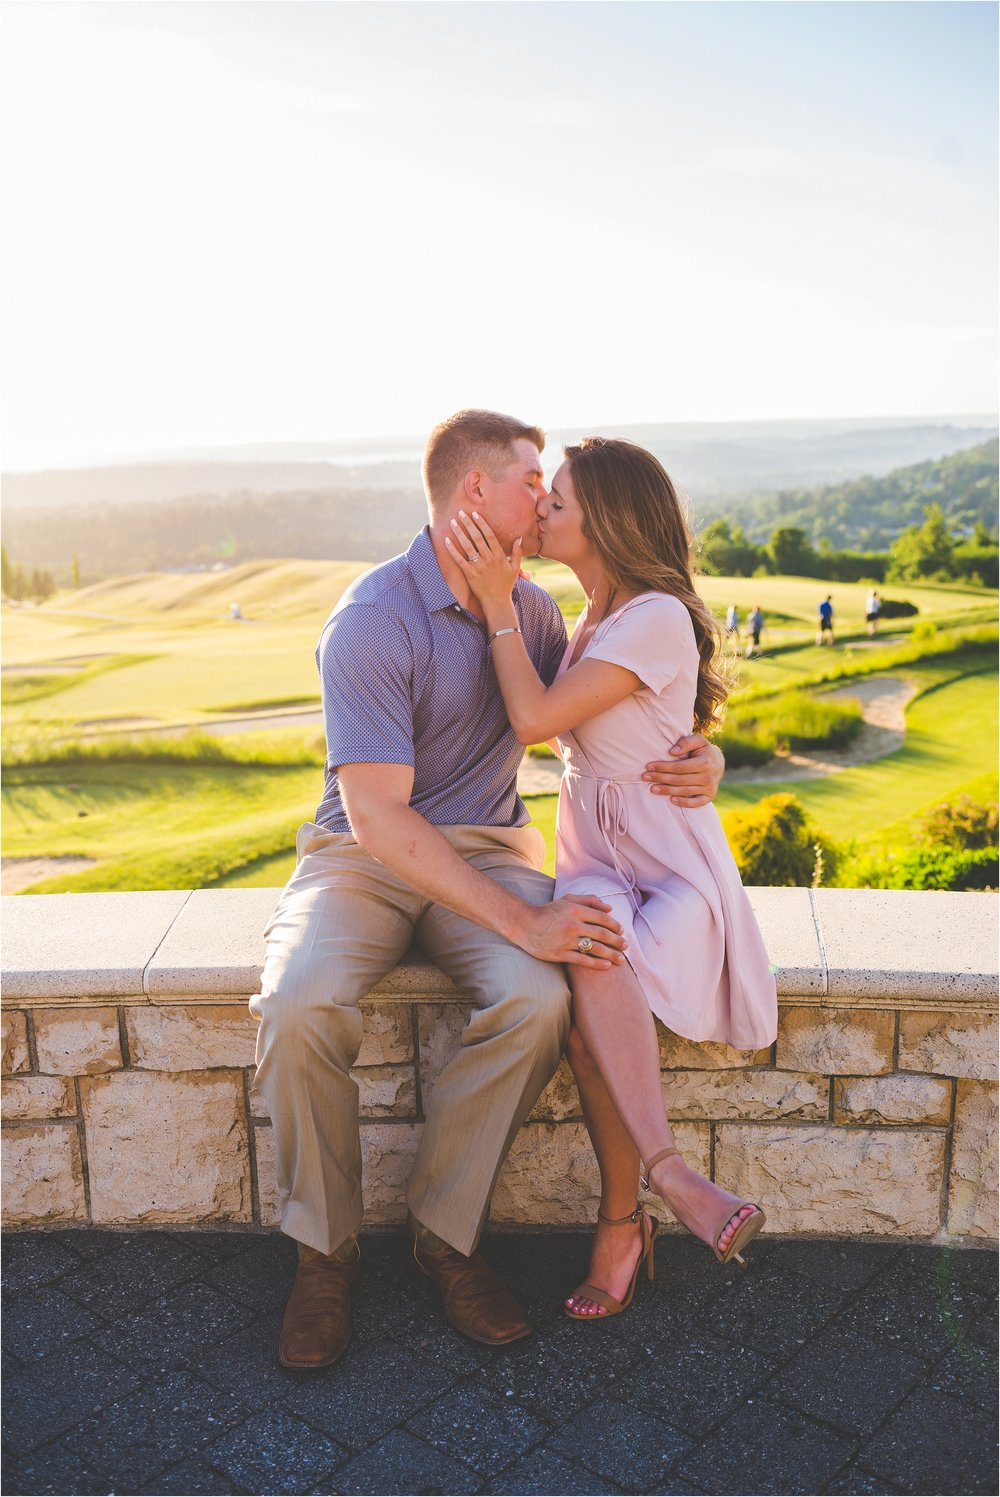 newcastle-golf-club-proposal-jannicka-mayte-seattle-washington-engagement-wedding-photographer_0052.jpg